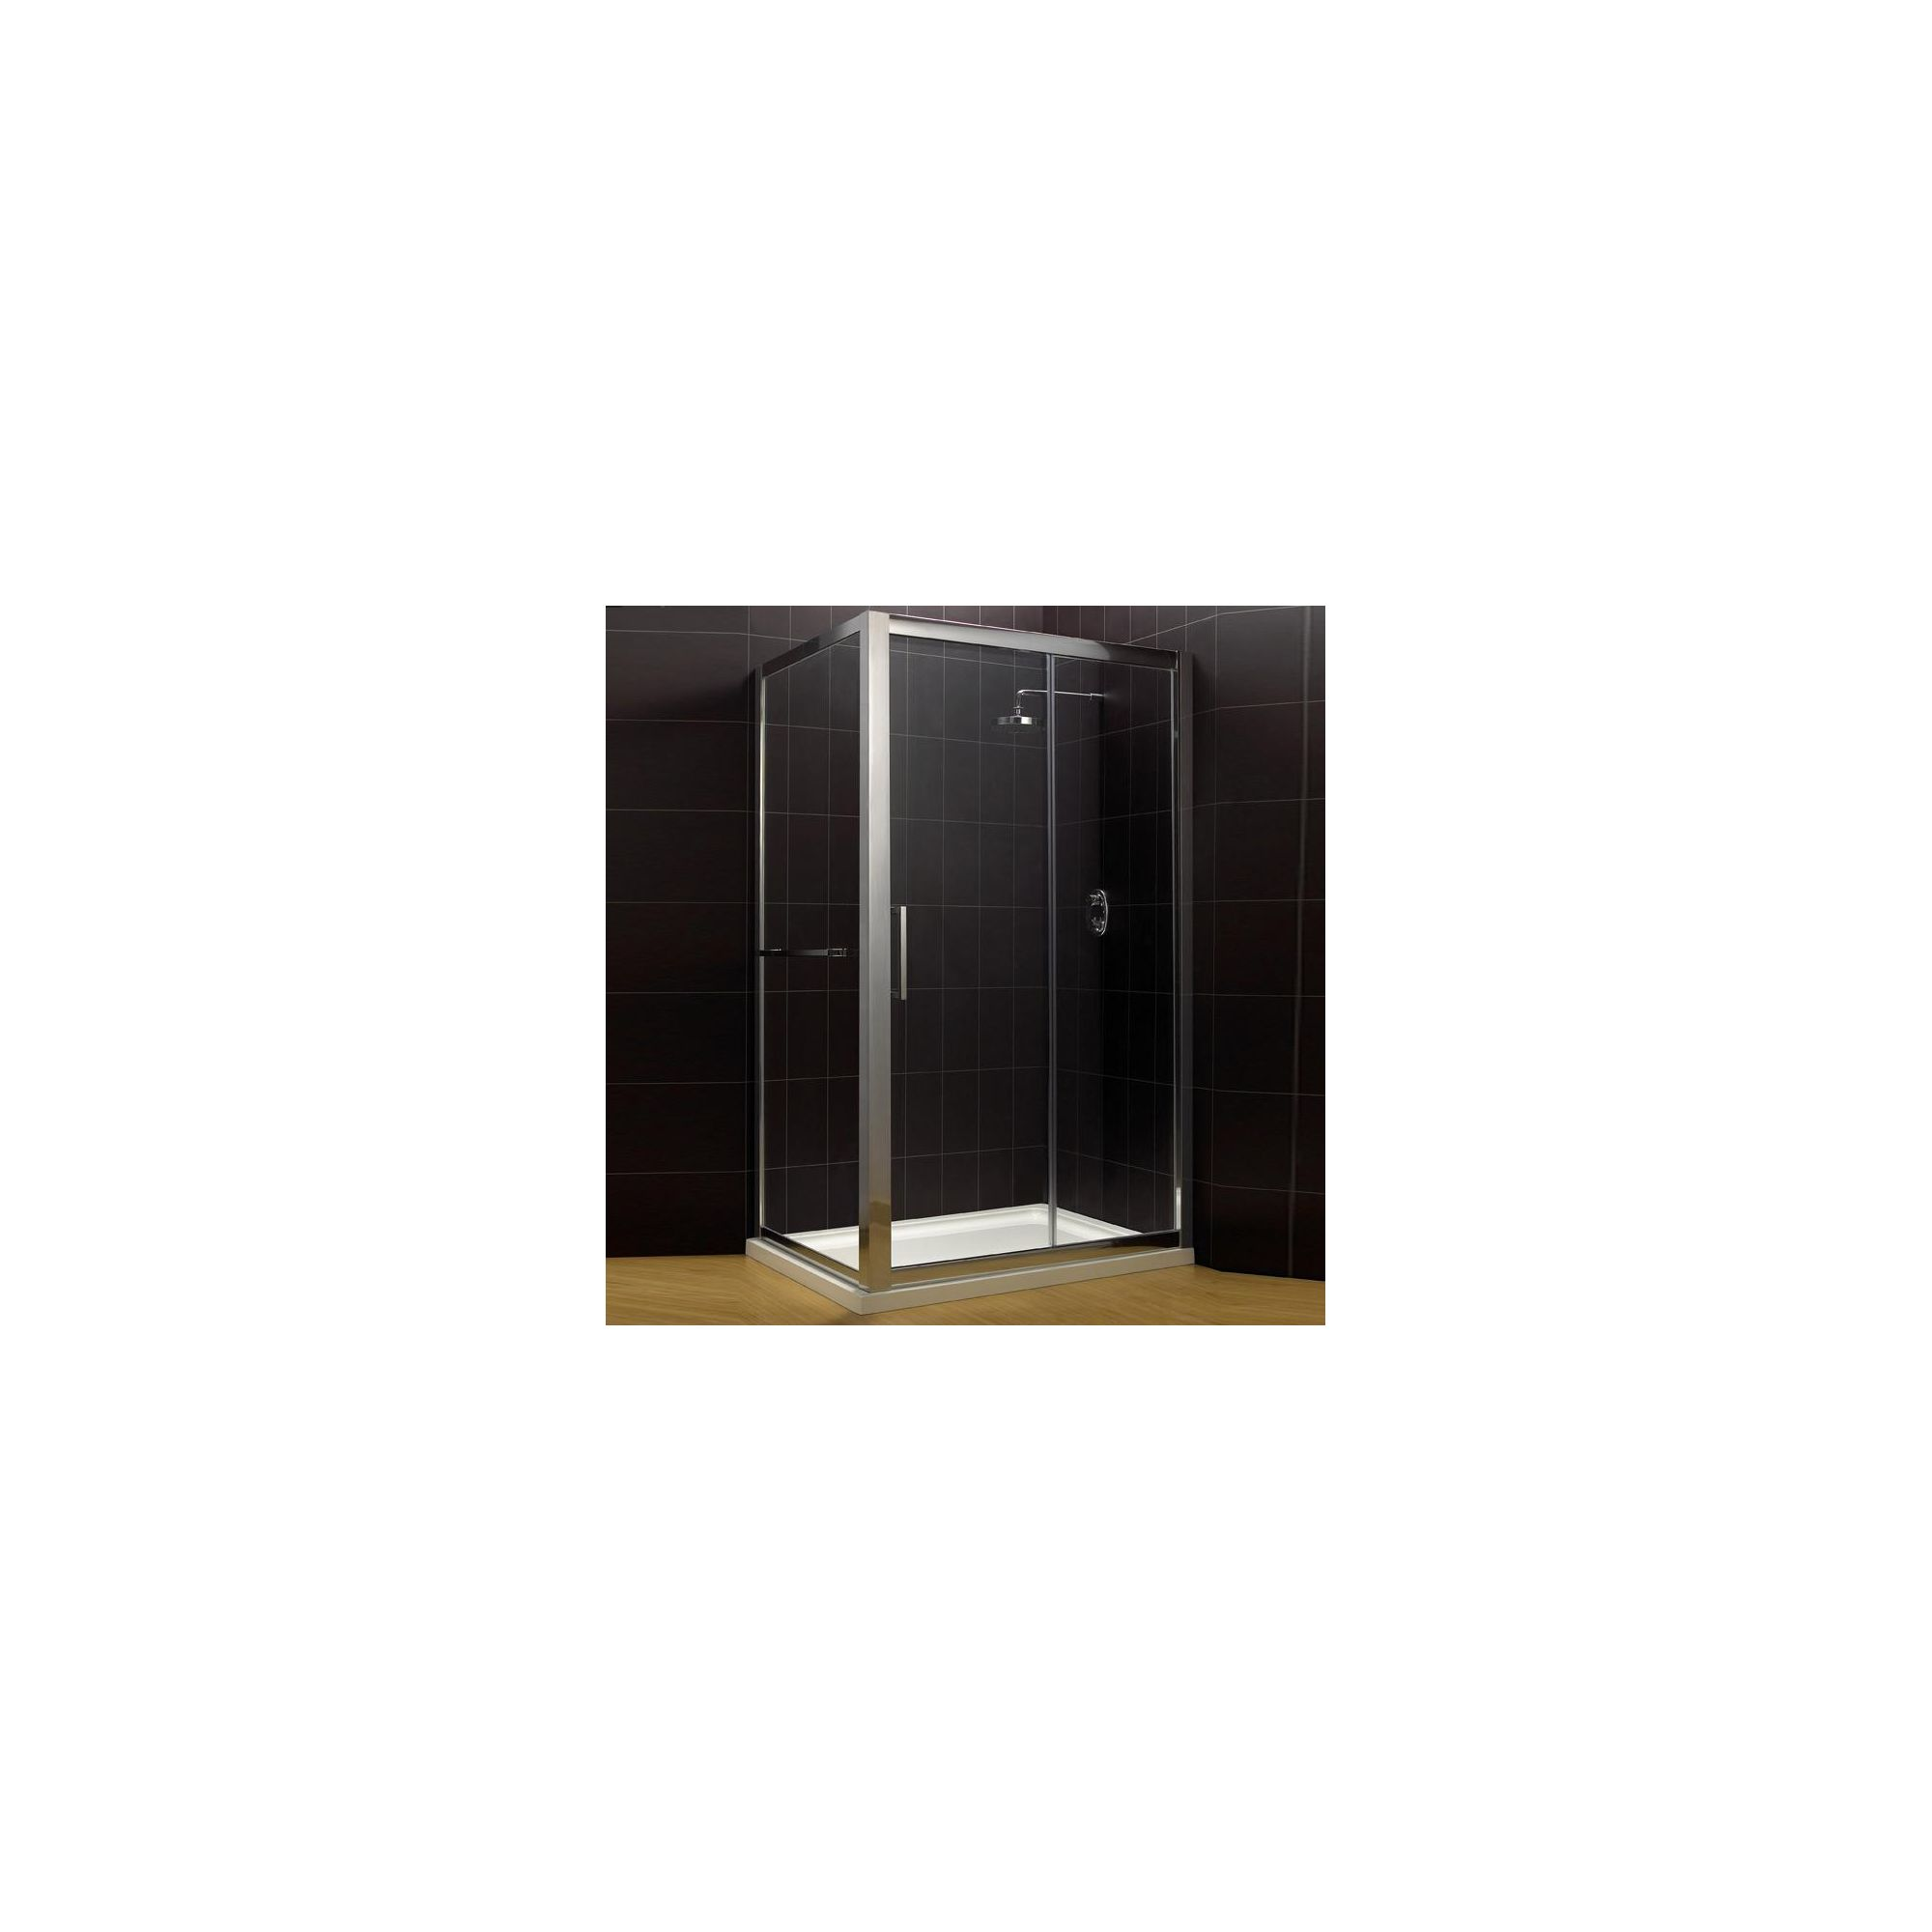 Duchy Supreme Silver Sliding Door Shower Enclosure with Towel Rail, 1100mm x 700mm, Standard Tray, 8mm Glass at Tesco Direct